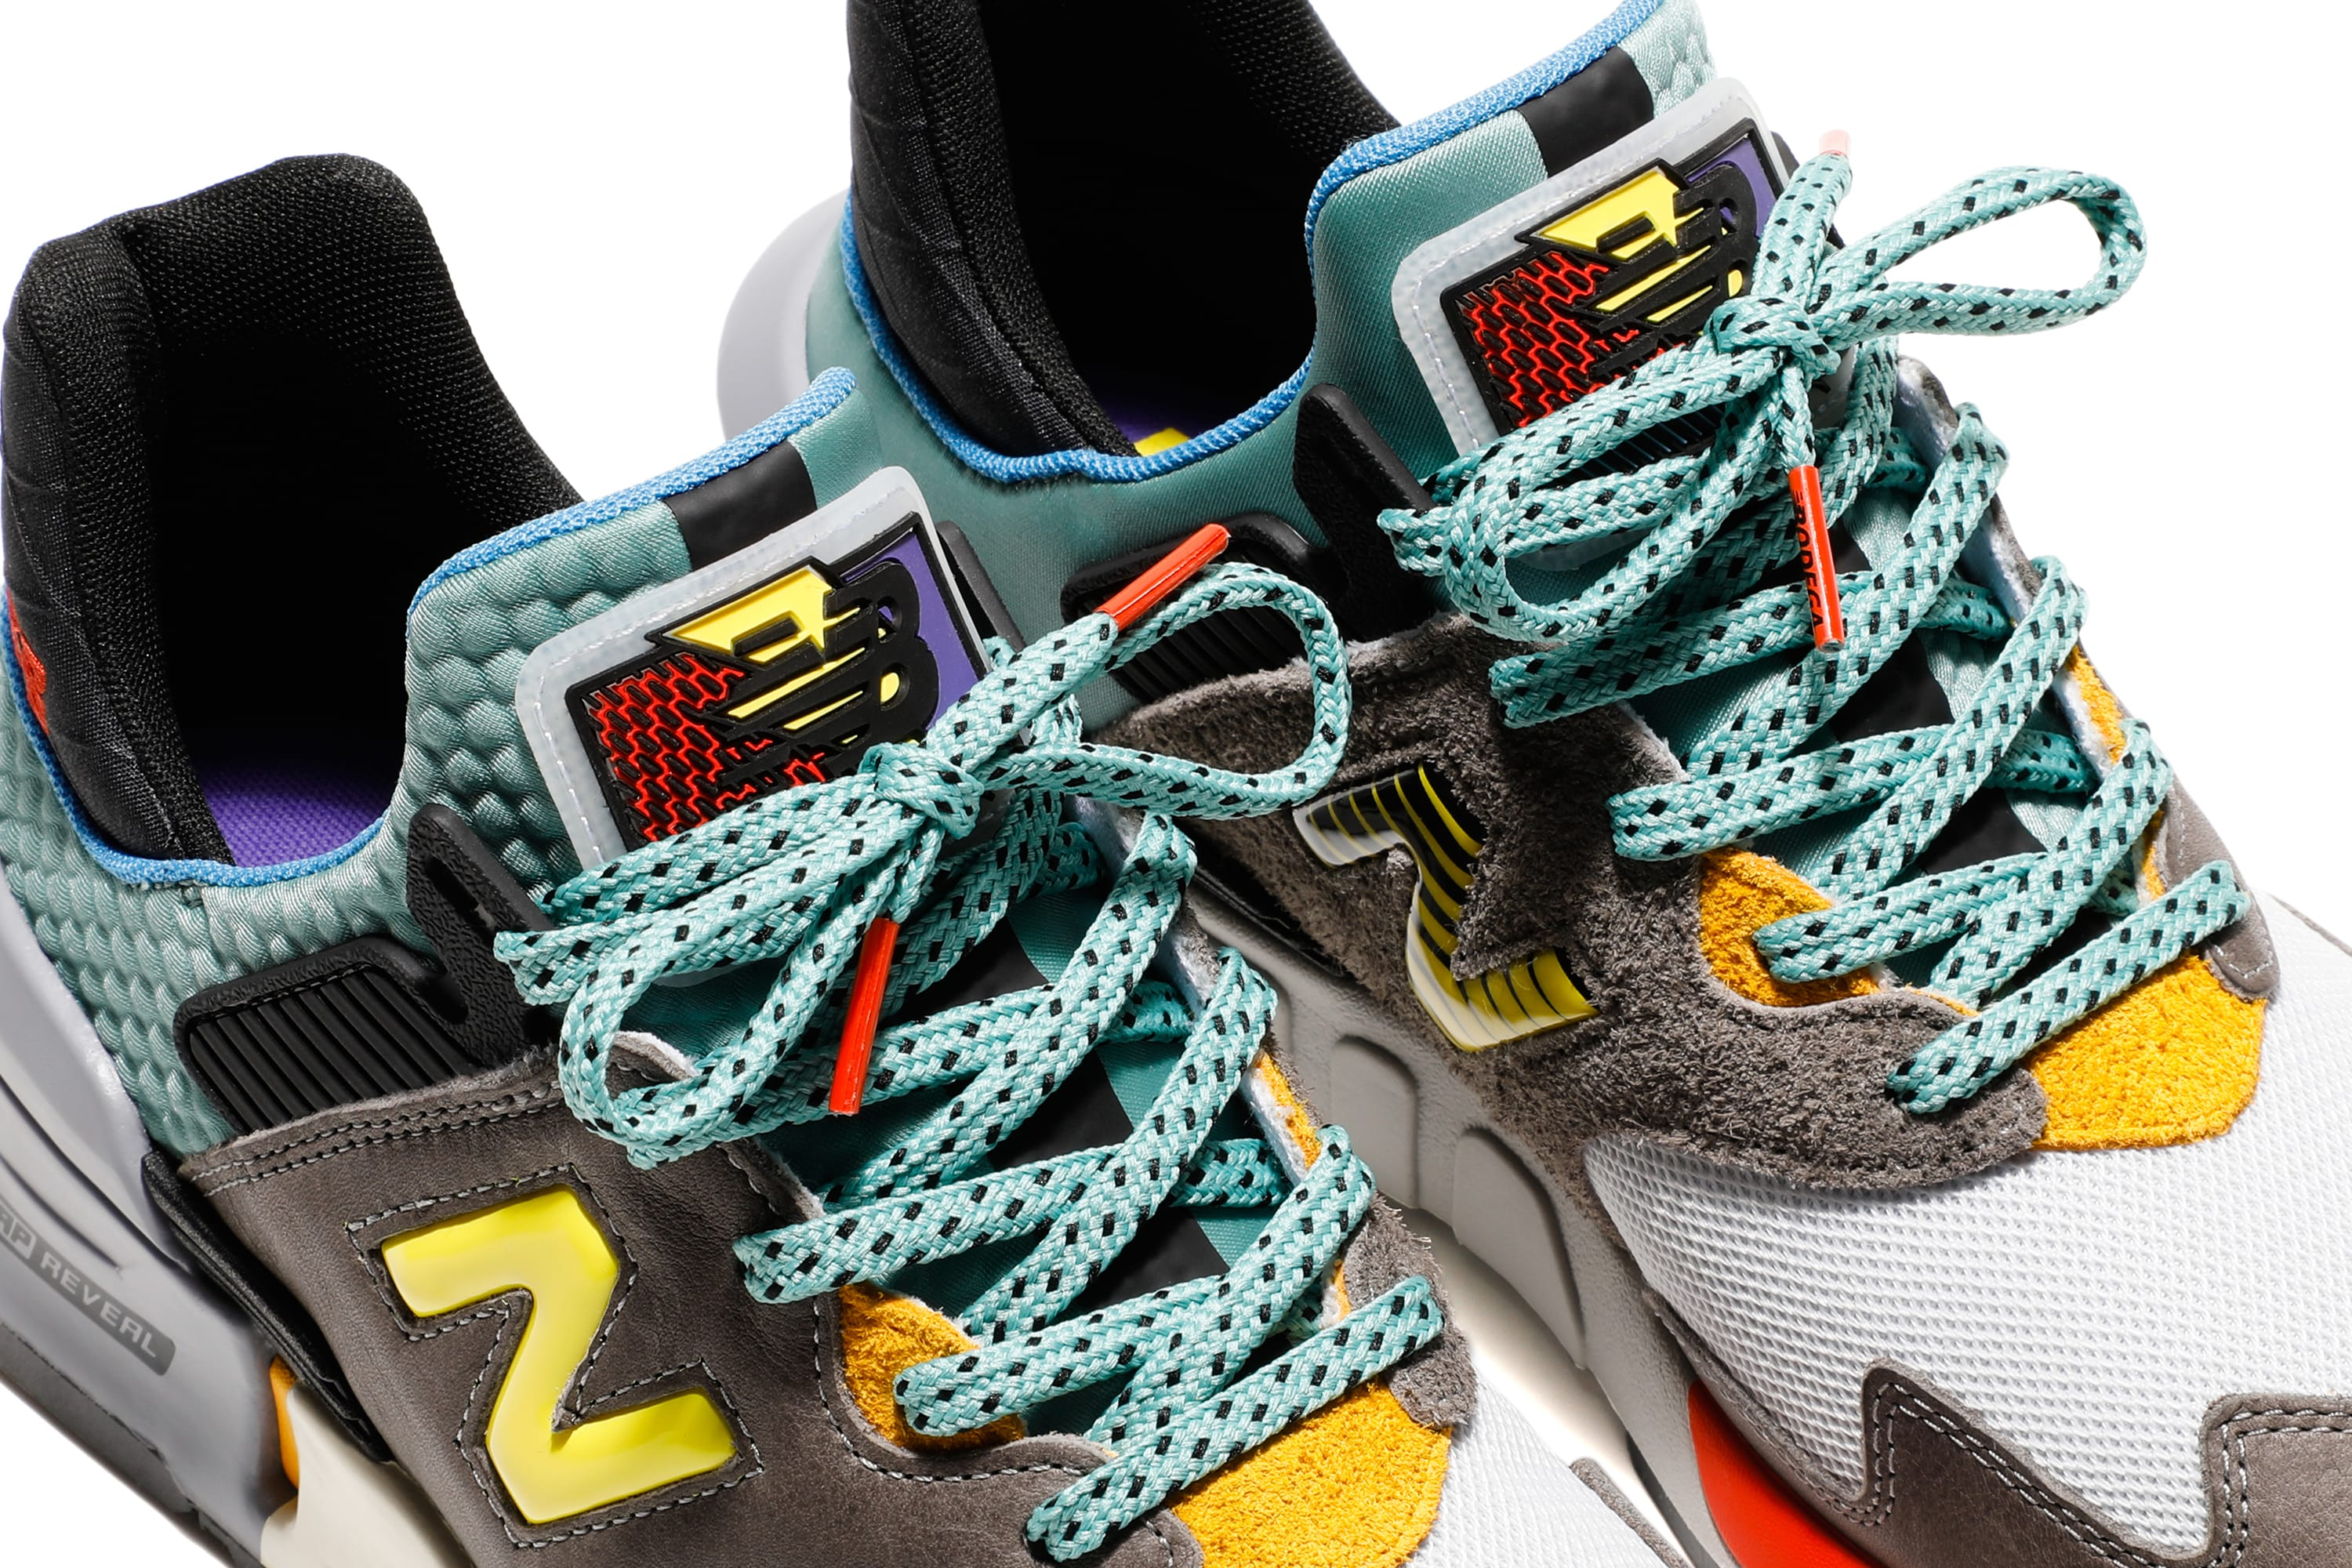 size 40 d85e5 c6aa9 Bodega x New Balance 997S 'No Bad Days' Release Date | Sole ...